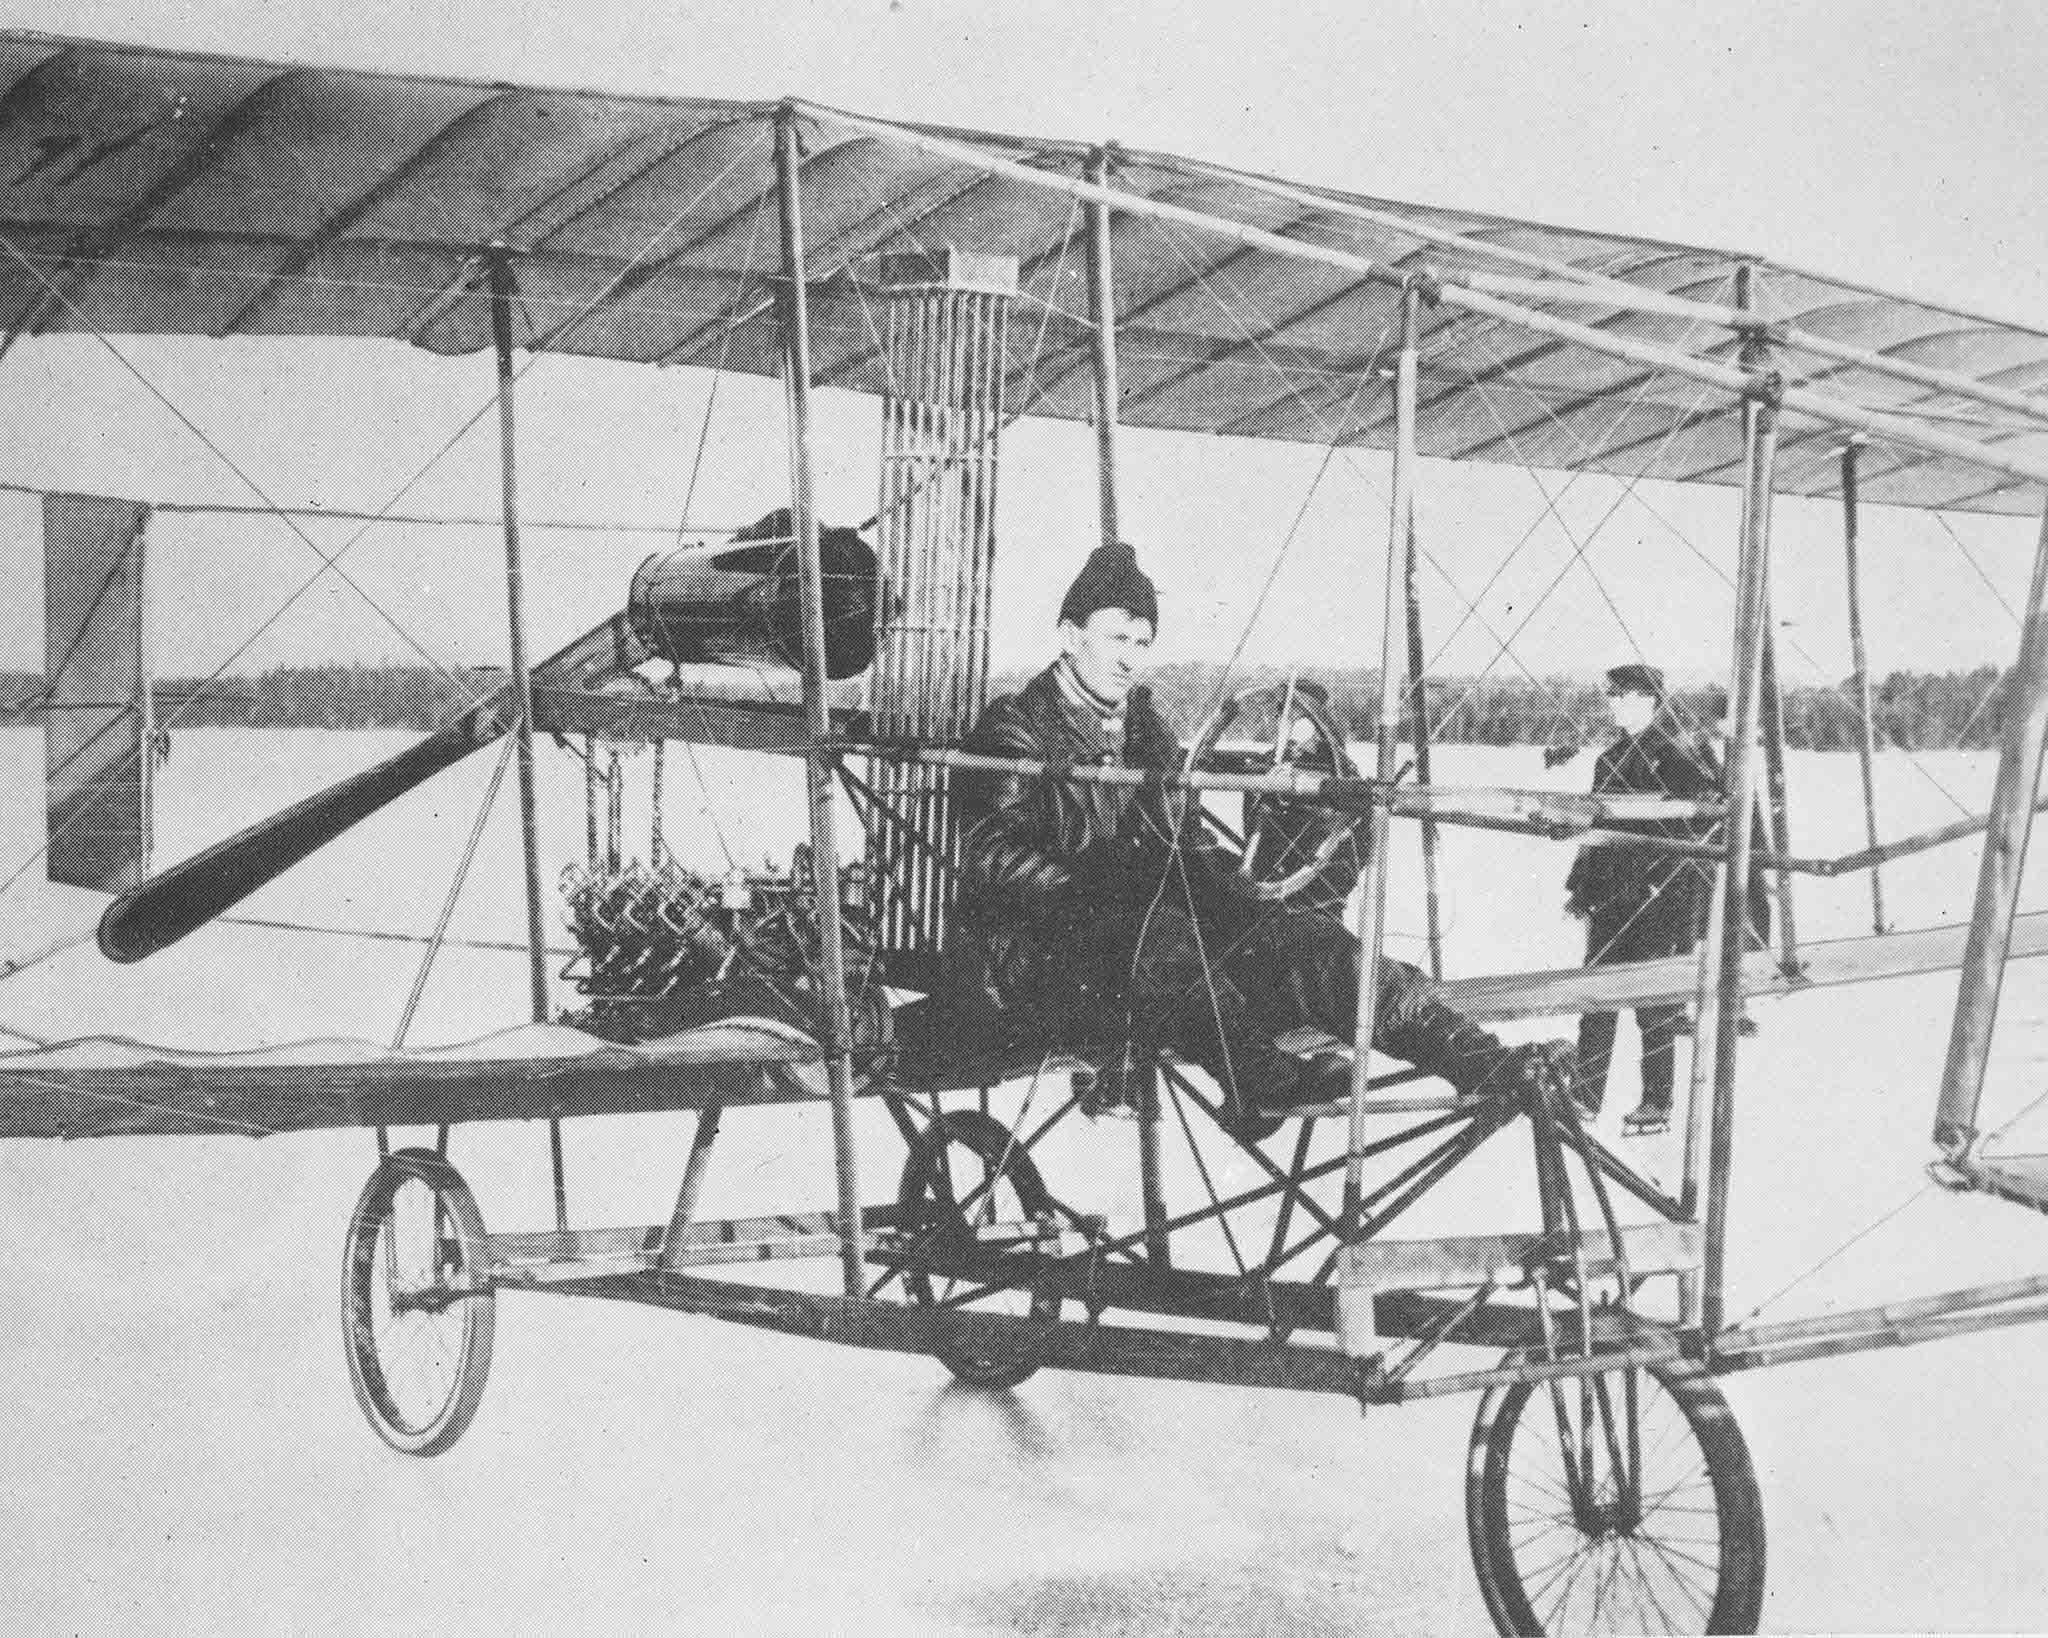 The Silver Dart, built by the Aerial Experimental Association, with Douglas McCurdy at the controls, on February 23, 1909. PHOTO: RE74-217, DND archives